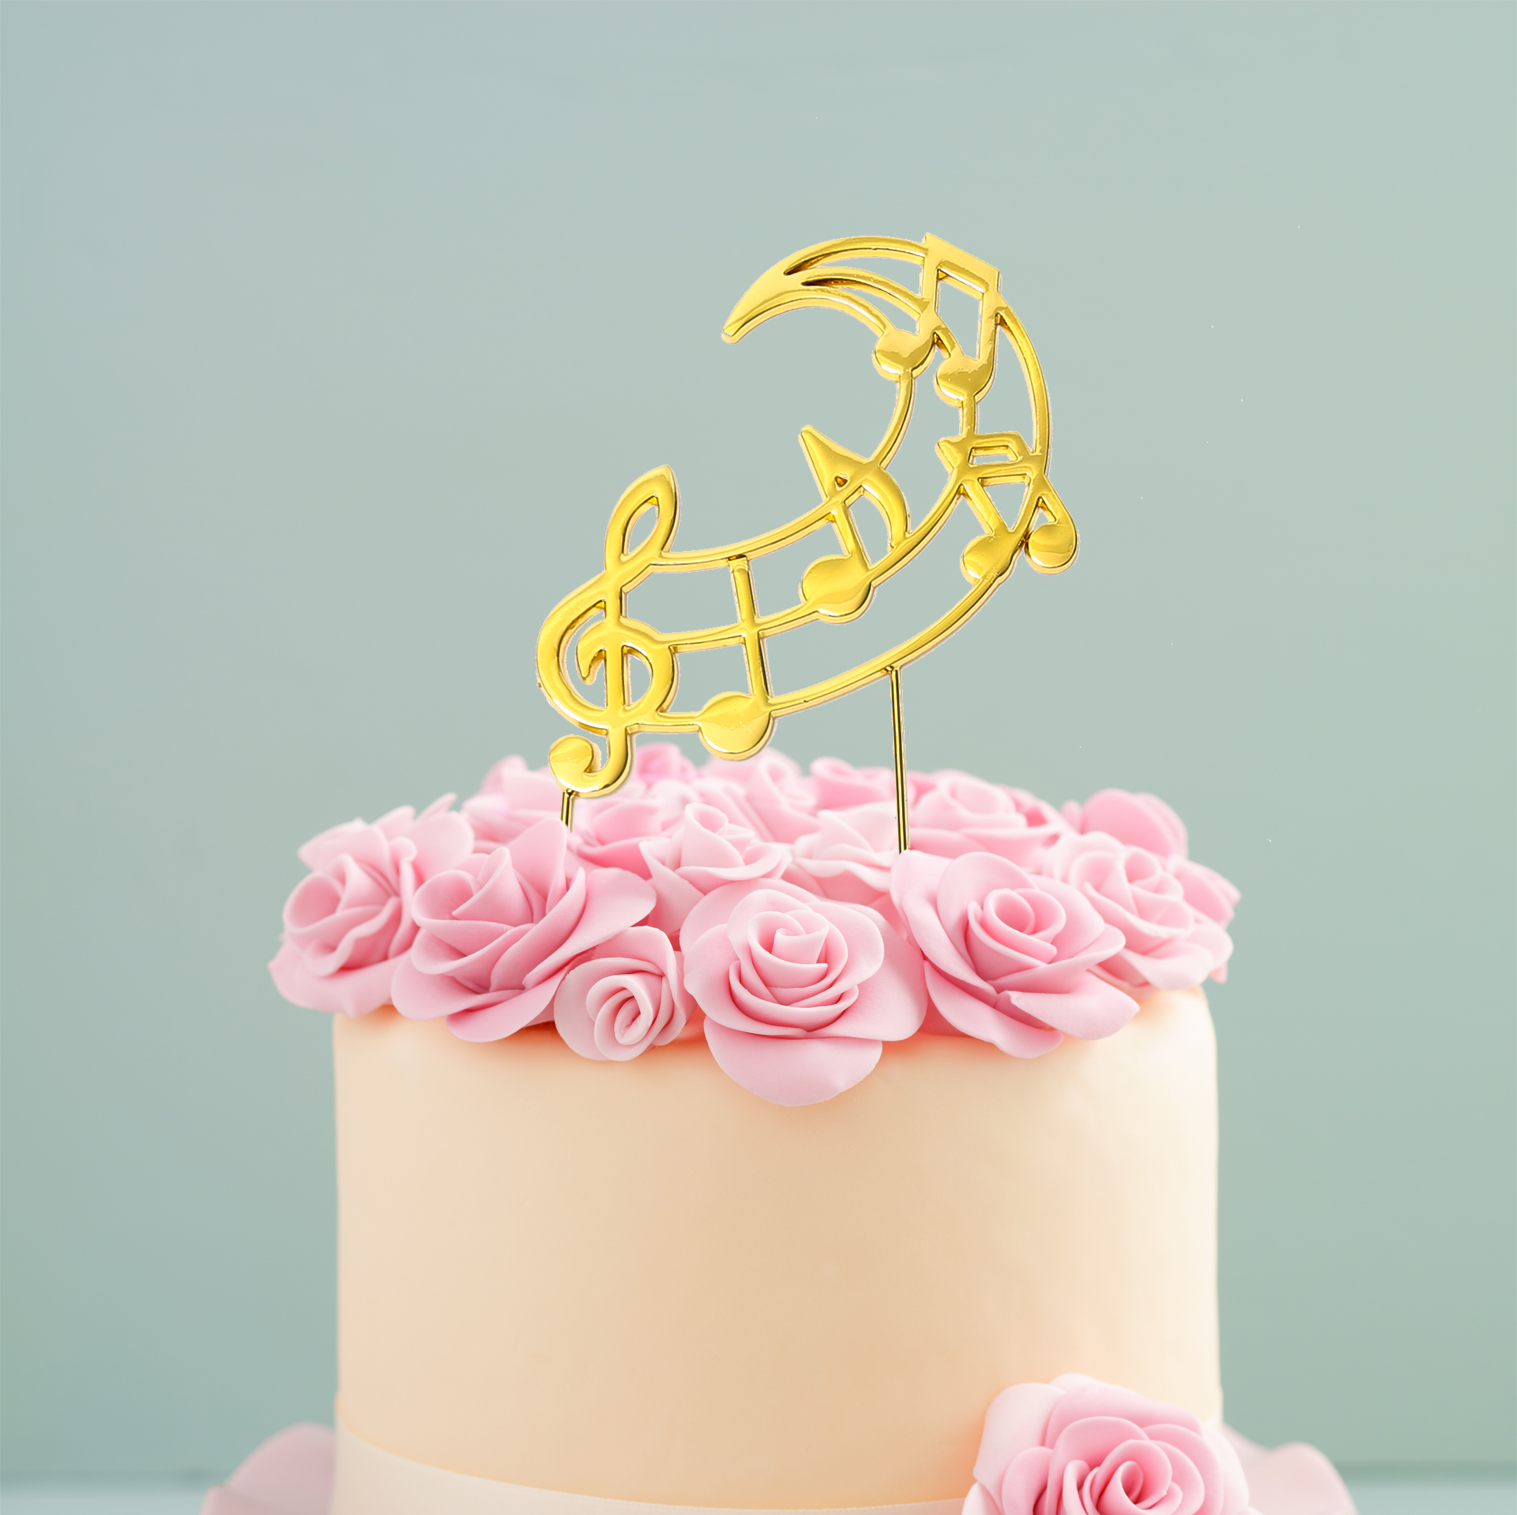 GOLD Plated Cake Topper - MUSIC NOTES